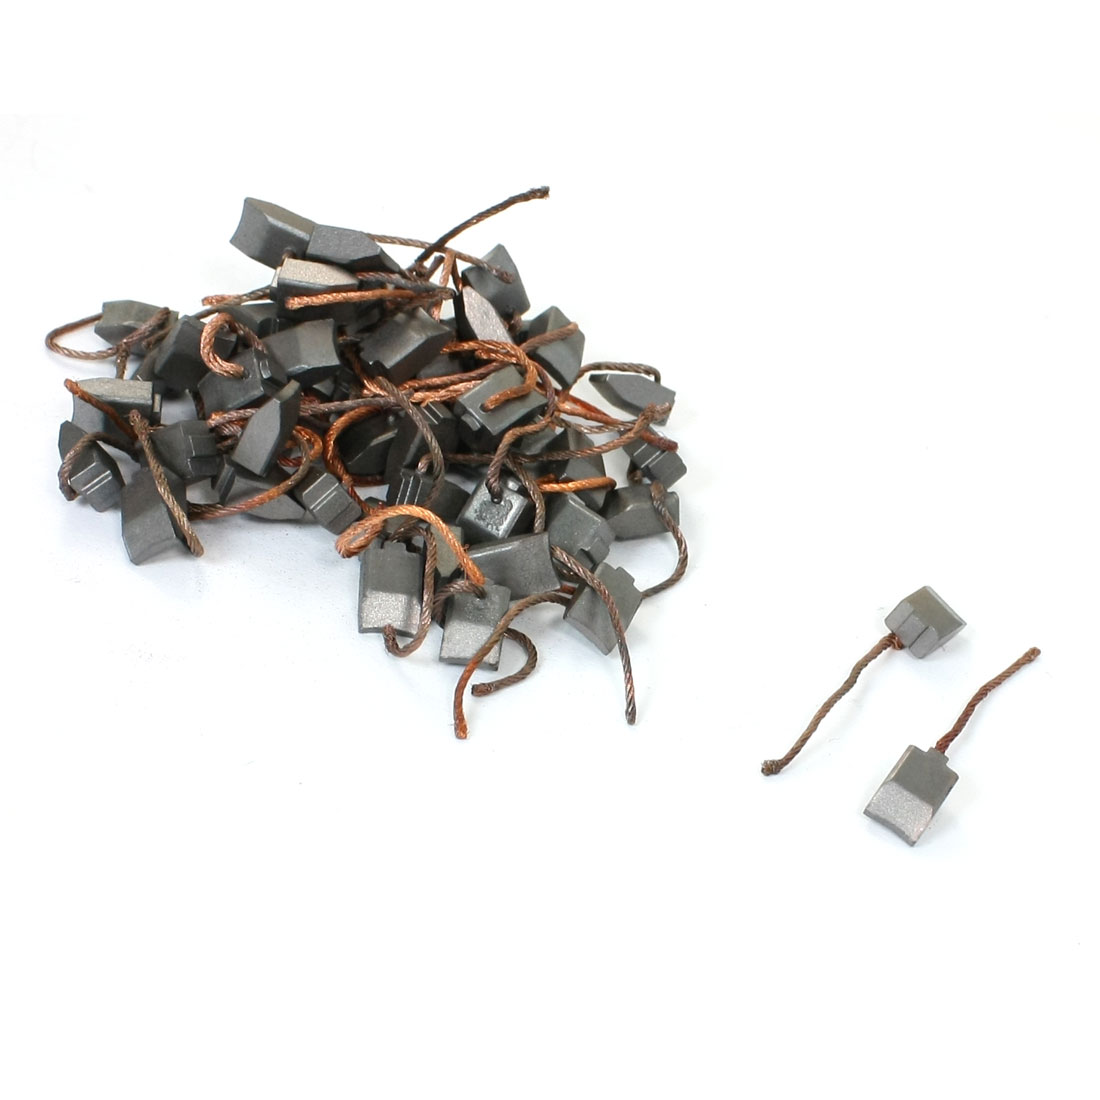 50 Pcs 4.2mm x 6mm x 8.5mm Wire Leaded Carbon Brushes for Massager